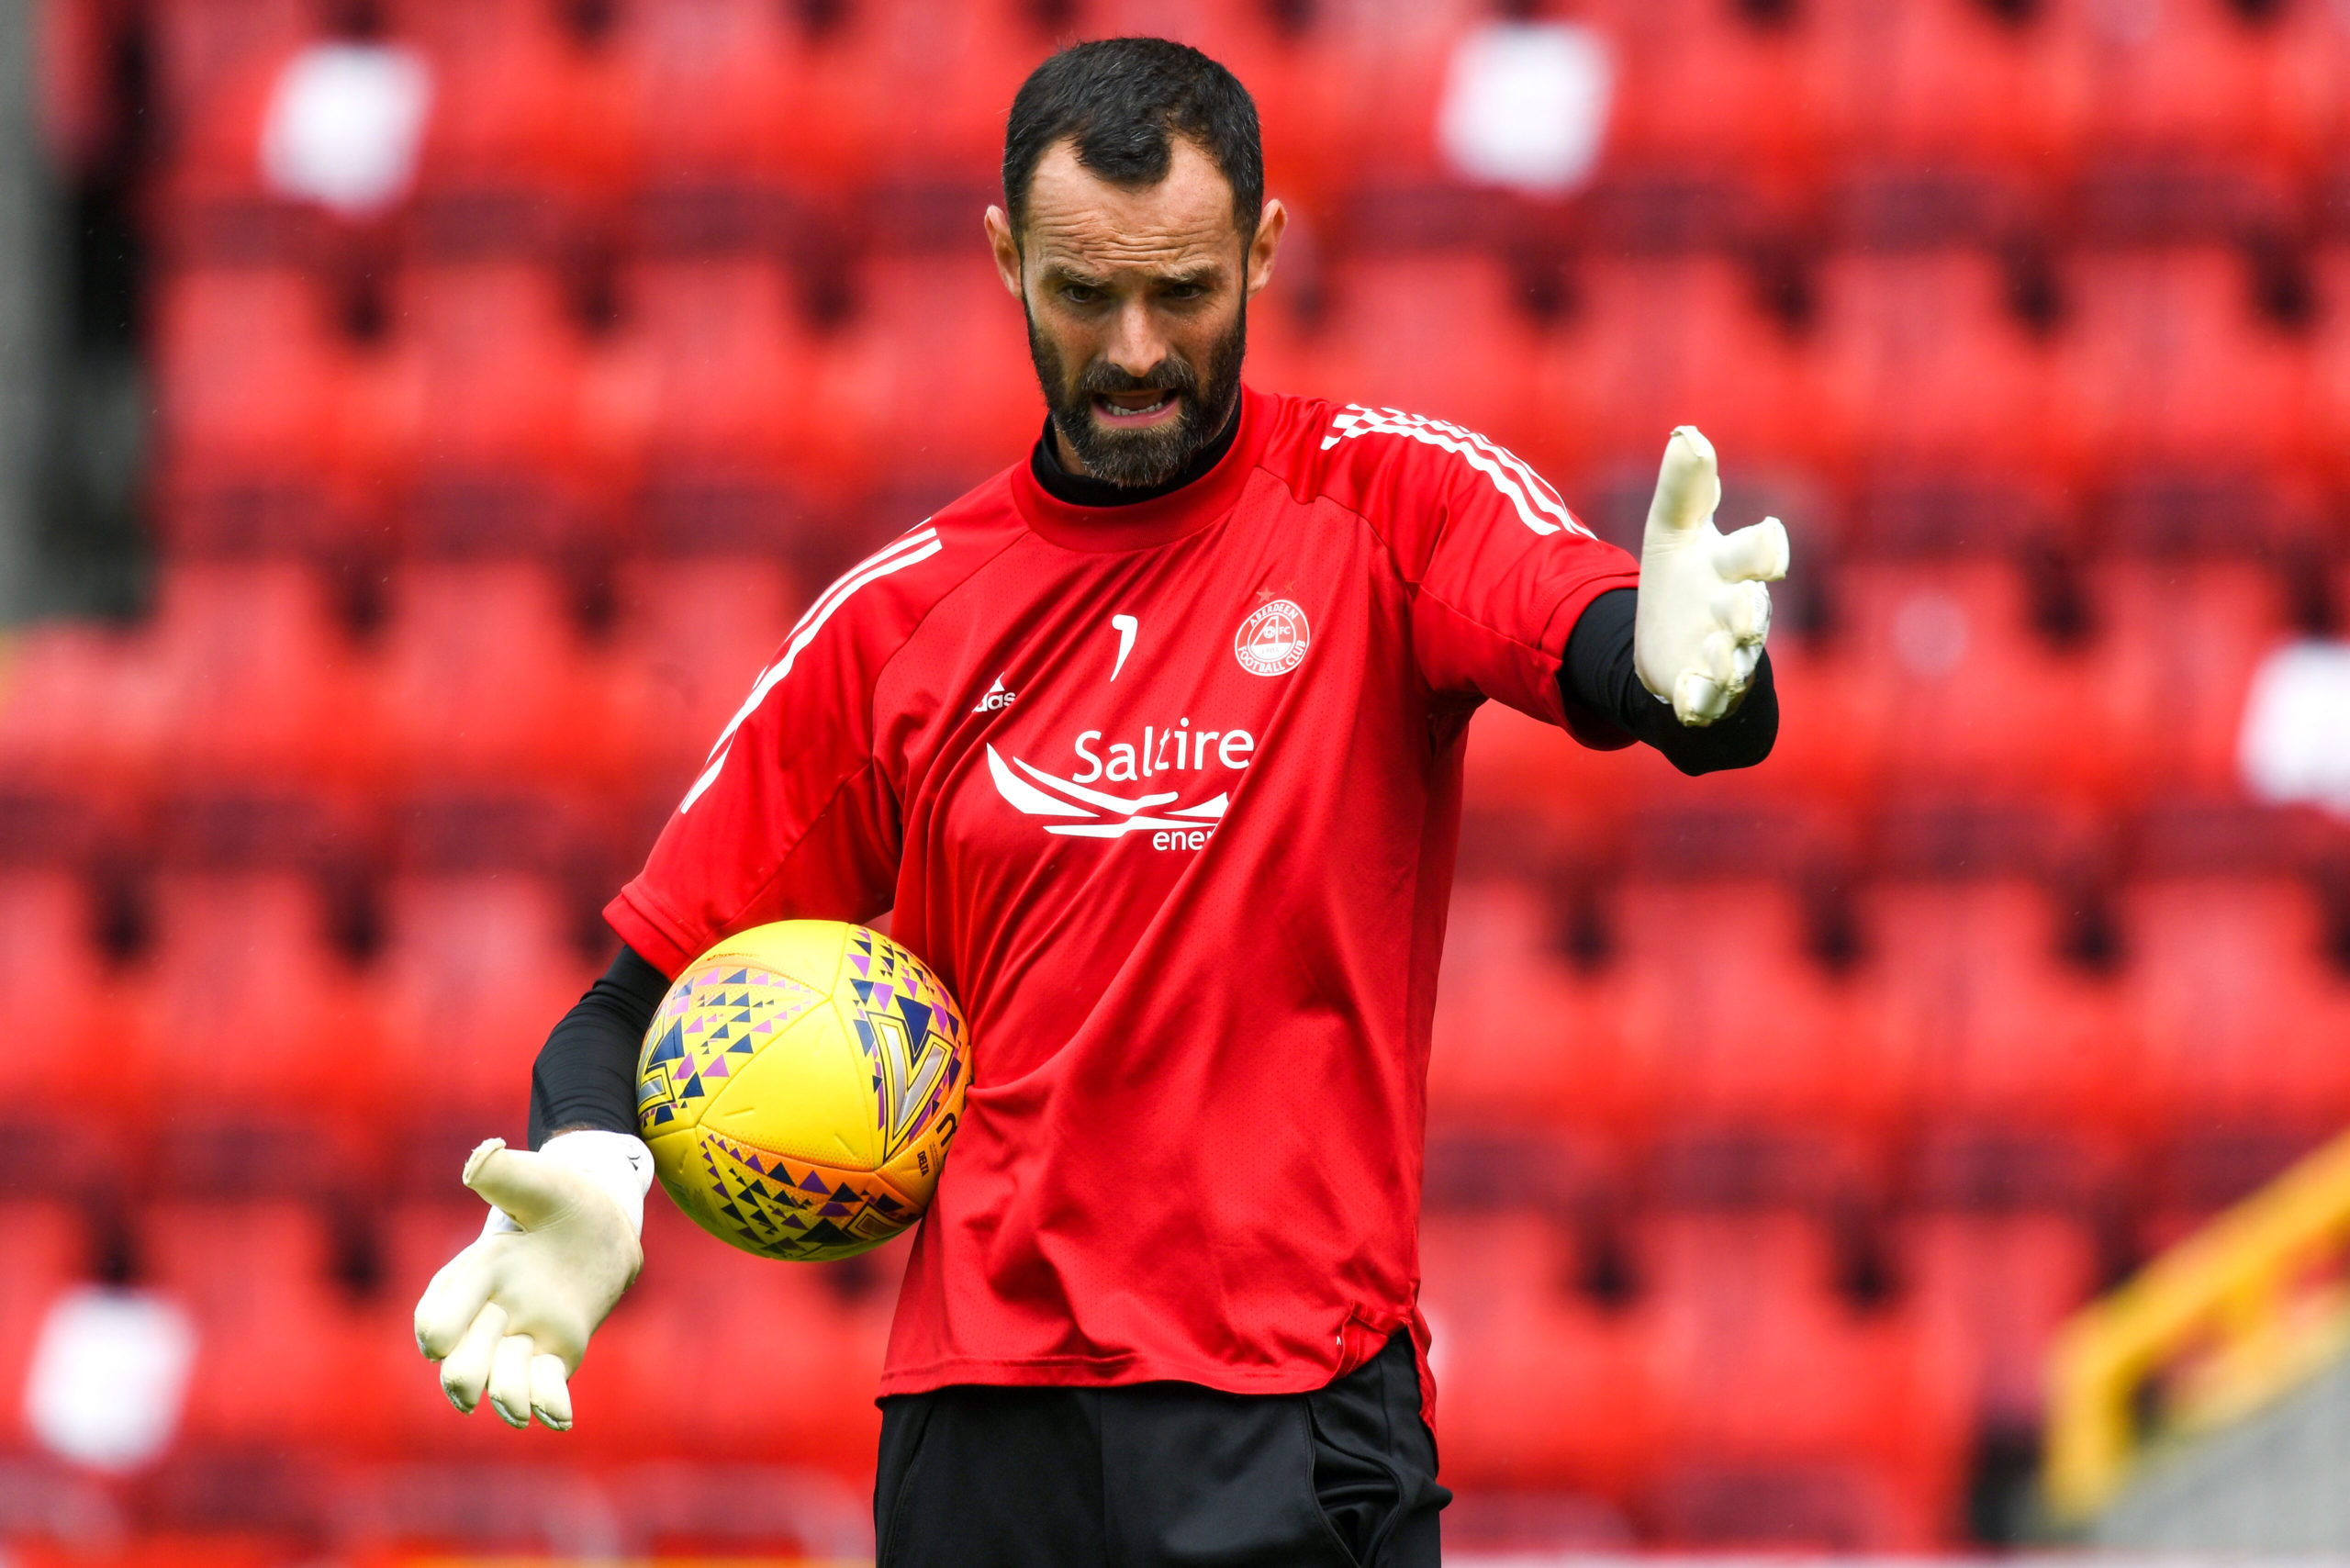 Aberdeen captain Joe Lewis.